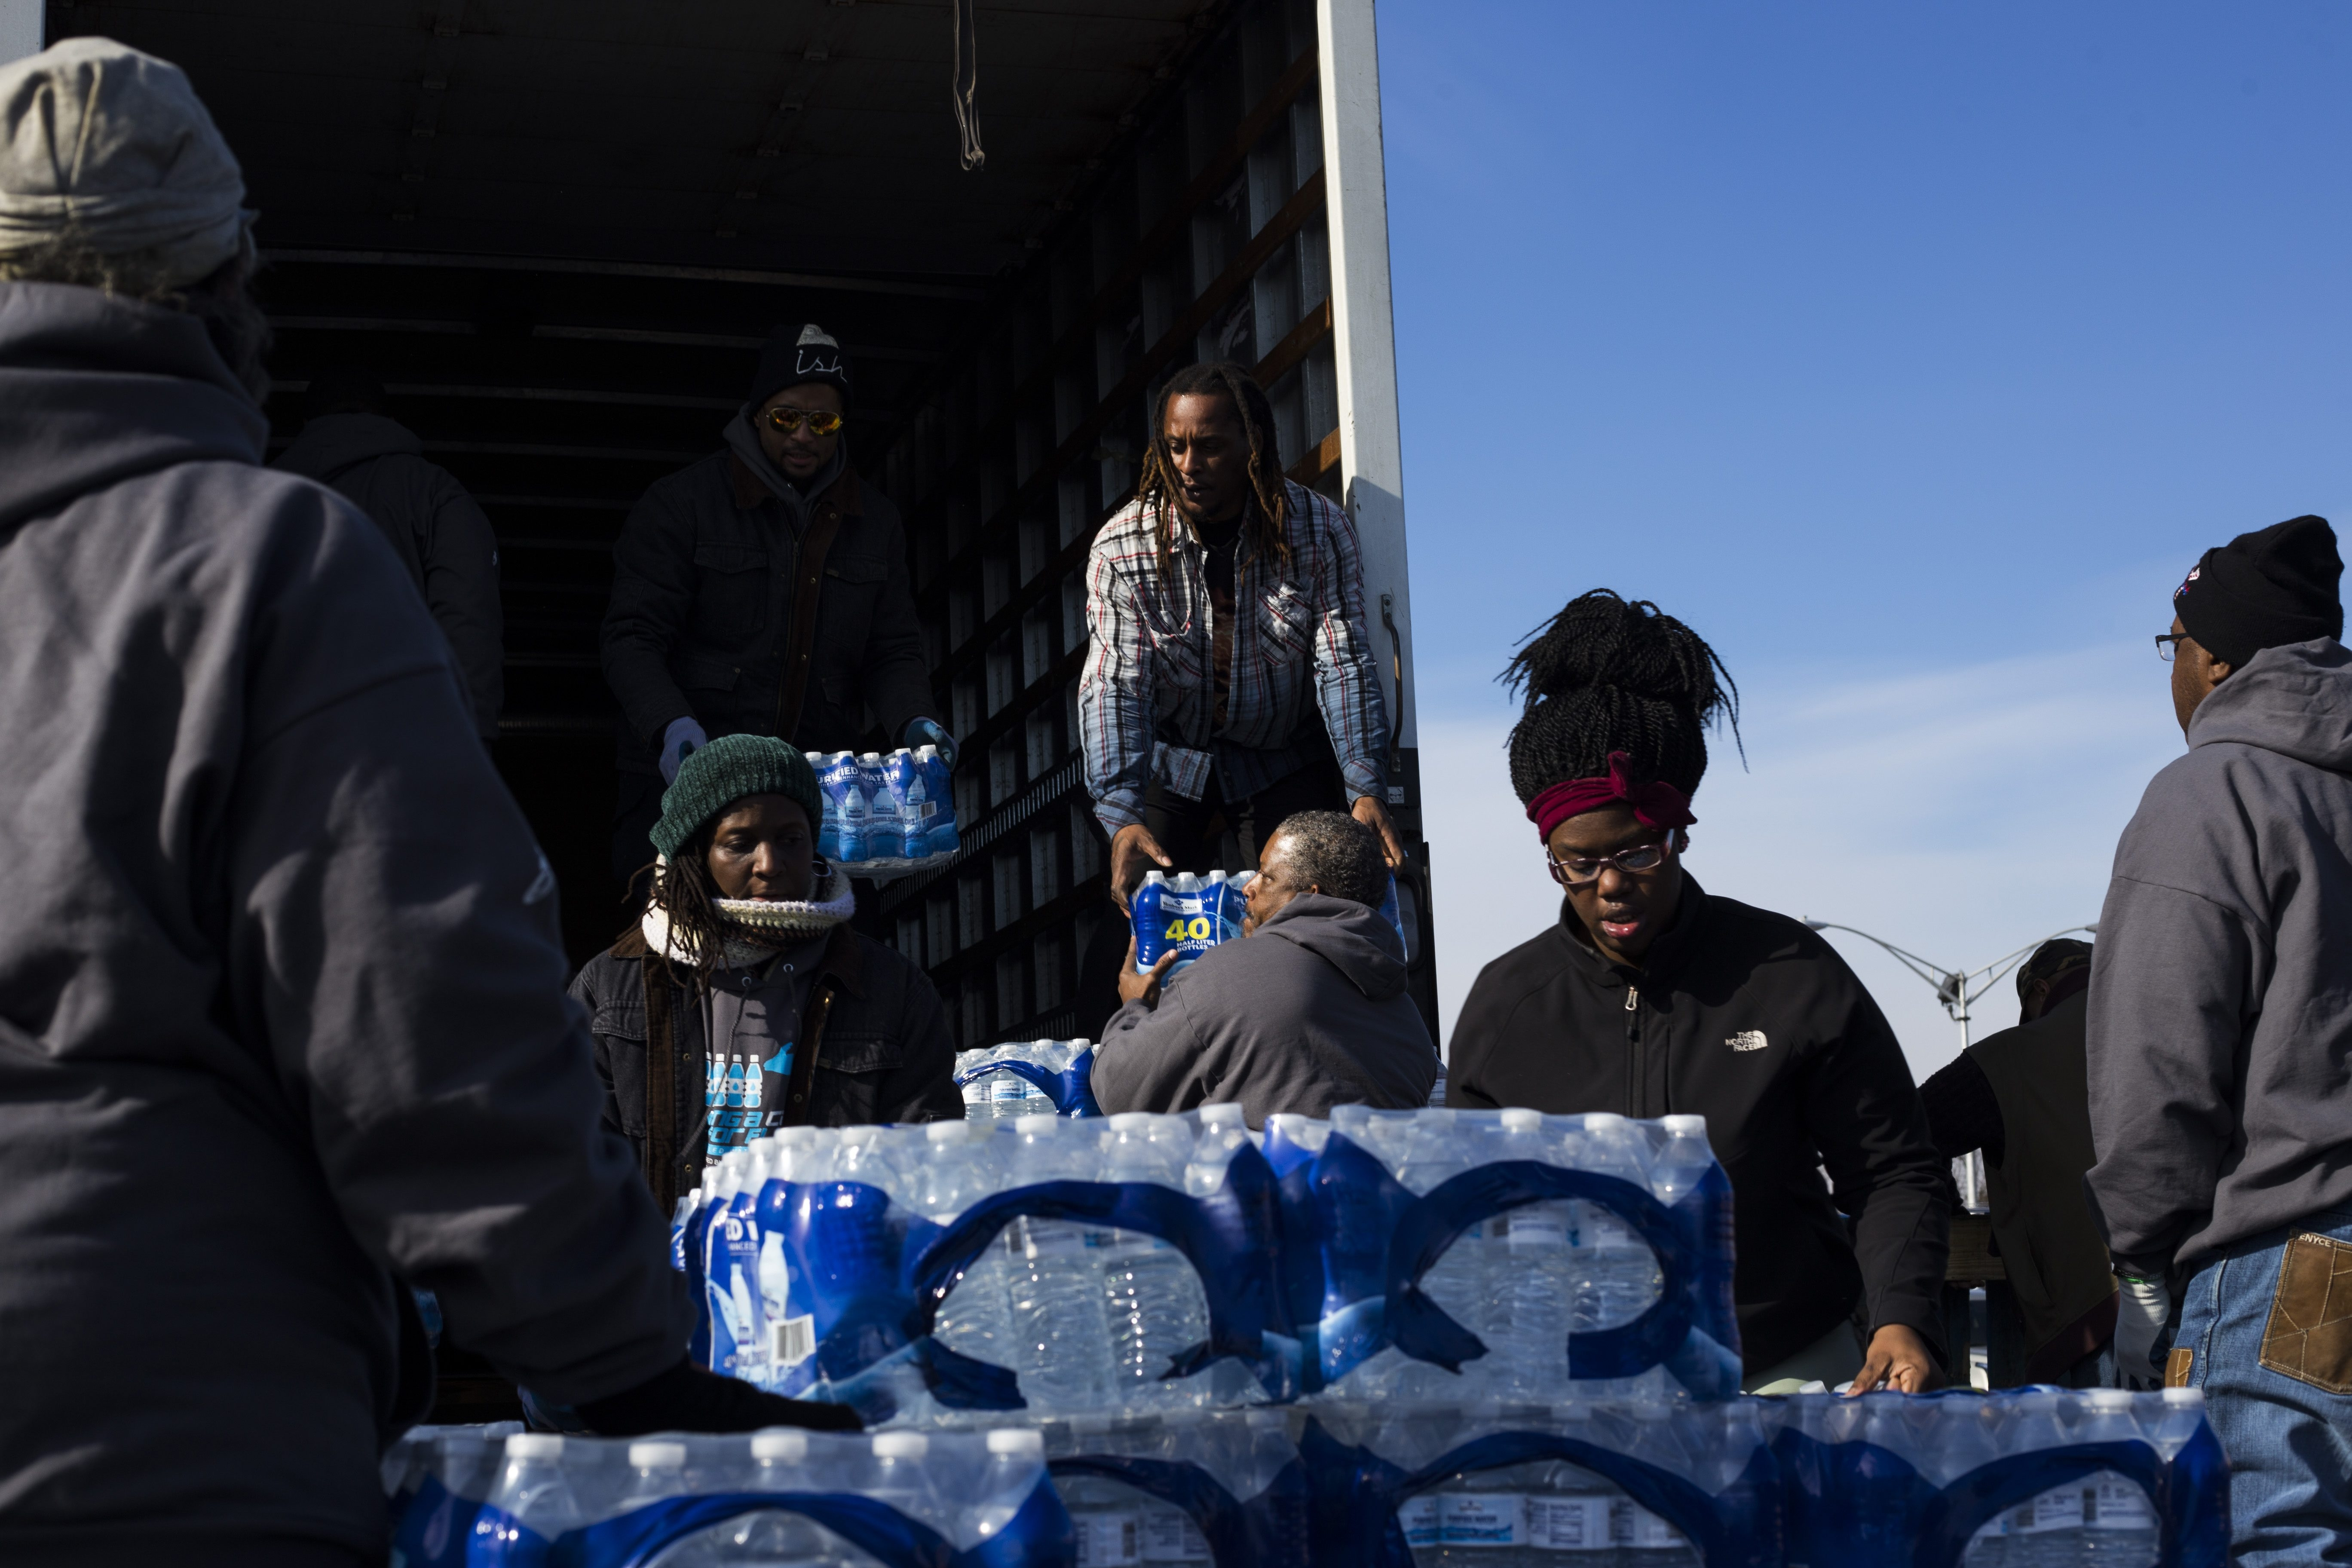 Volunteers stack cases of bottled water to hand out to a line of cars during a water drive put on in the North side of Flint, one of the areas most effected by the city's ongoing water crisis, on Saturday, February 6, 2016. Volunteers visited the city from both Syracuse and Buffalo, New York, to help address issues with access to fresh water. (Photo by Brittany Greeson for The Buffalo News)